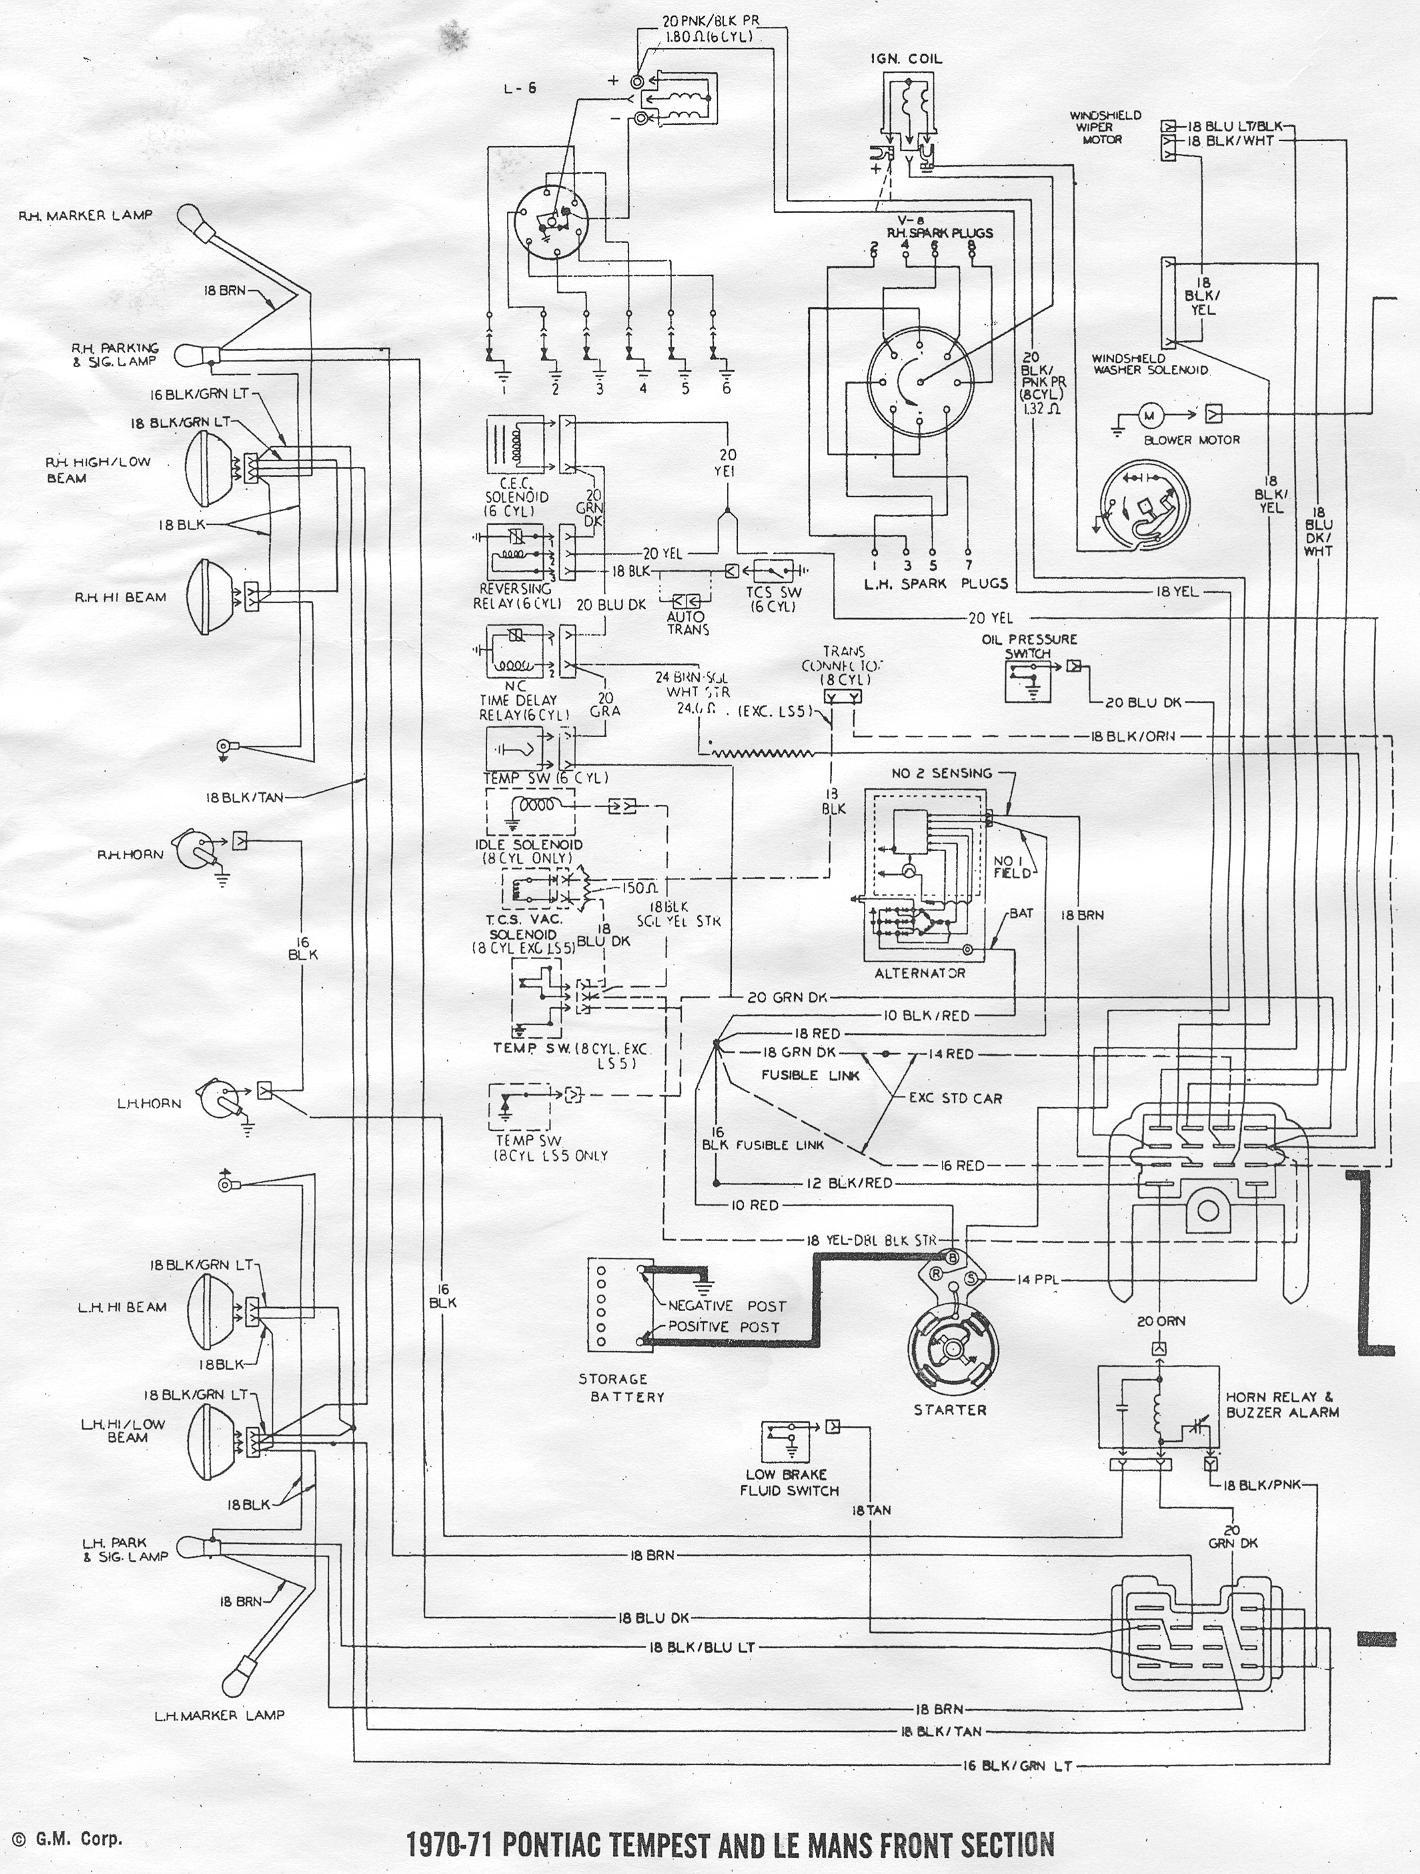 2006 Pontiac G6 Wiring Diagram G Repair Shop Manual Volume 2008 Headlight Harness Diagrams Online 2007